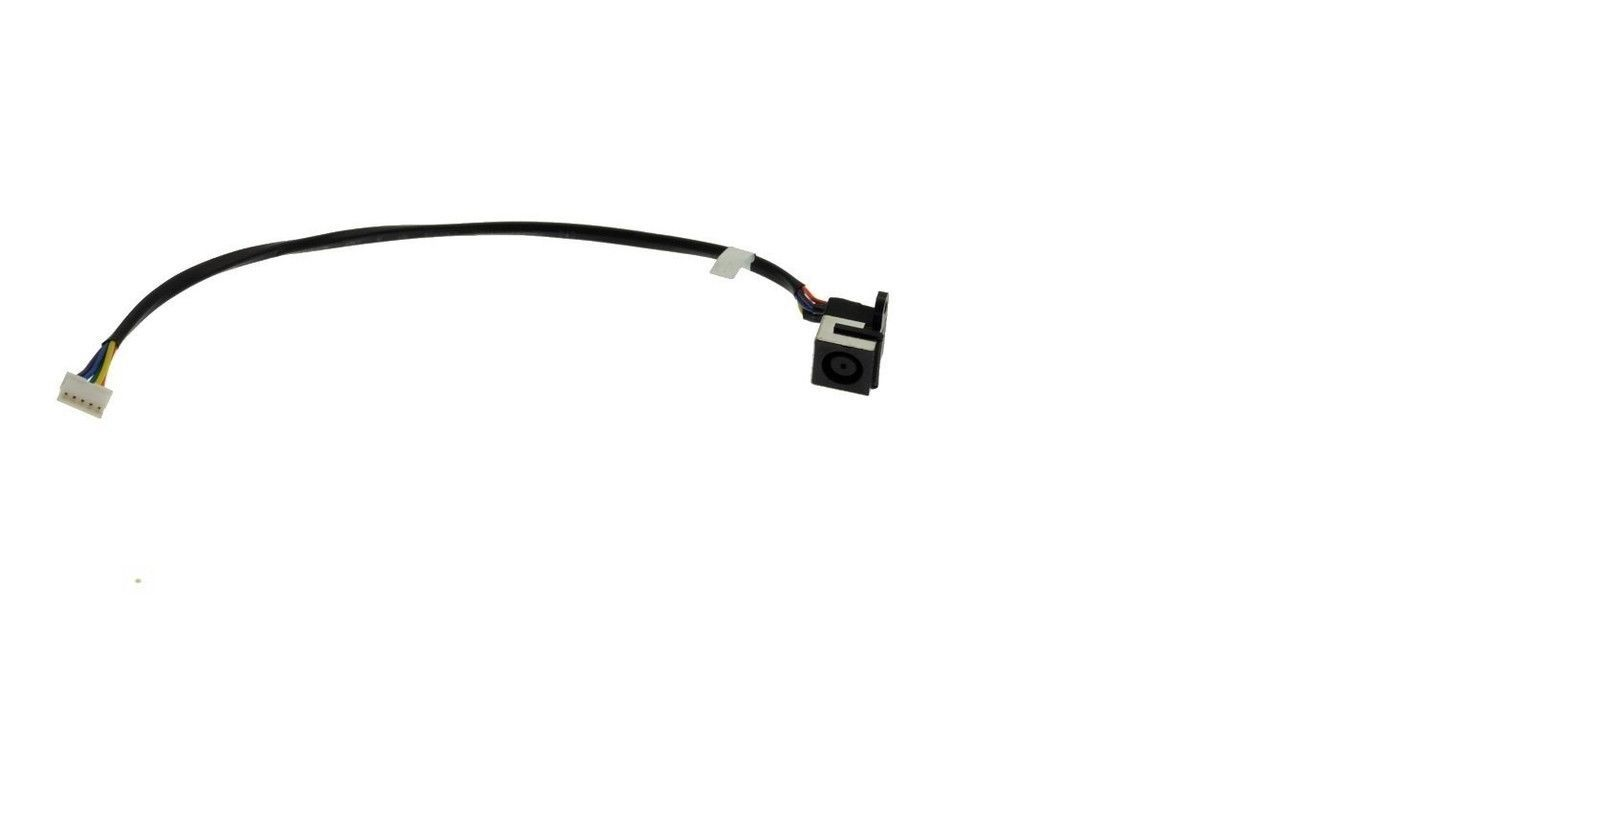 OEM Dell Inspiron 14R (N4010) DC Power Input Jack with Cable N32MW DD0UM8TH100